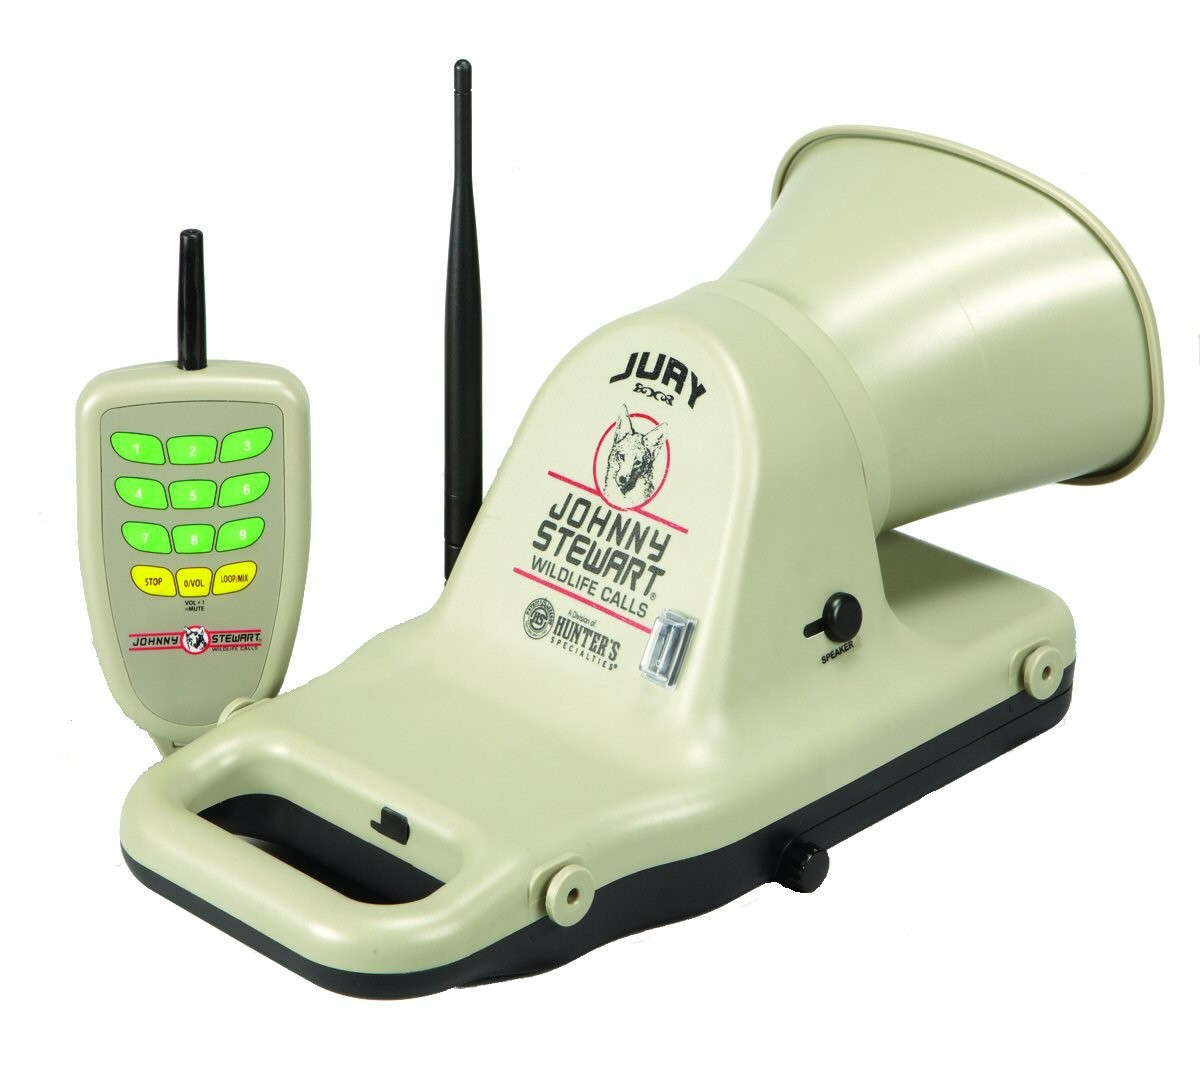 Johnny Stewart JS1 Jury Electronic Game with 25 Calls and Remote Control  JS1